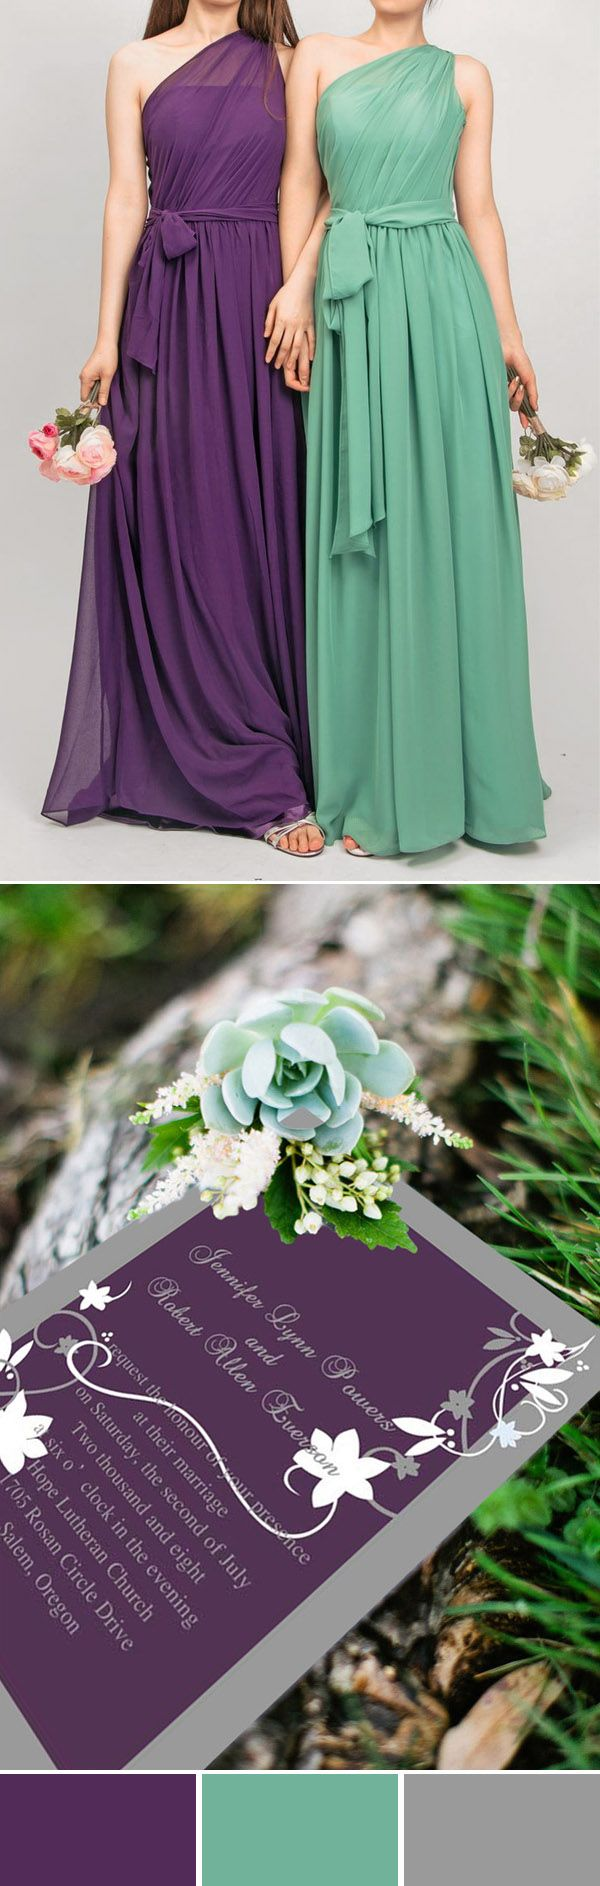 Purple wedding color ideas beautiful bridesmaid dresses for Mint green wedding dress